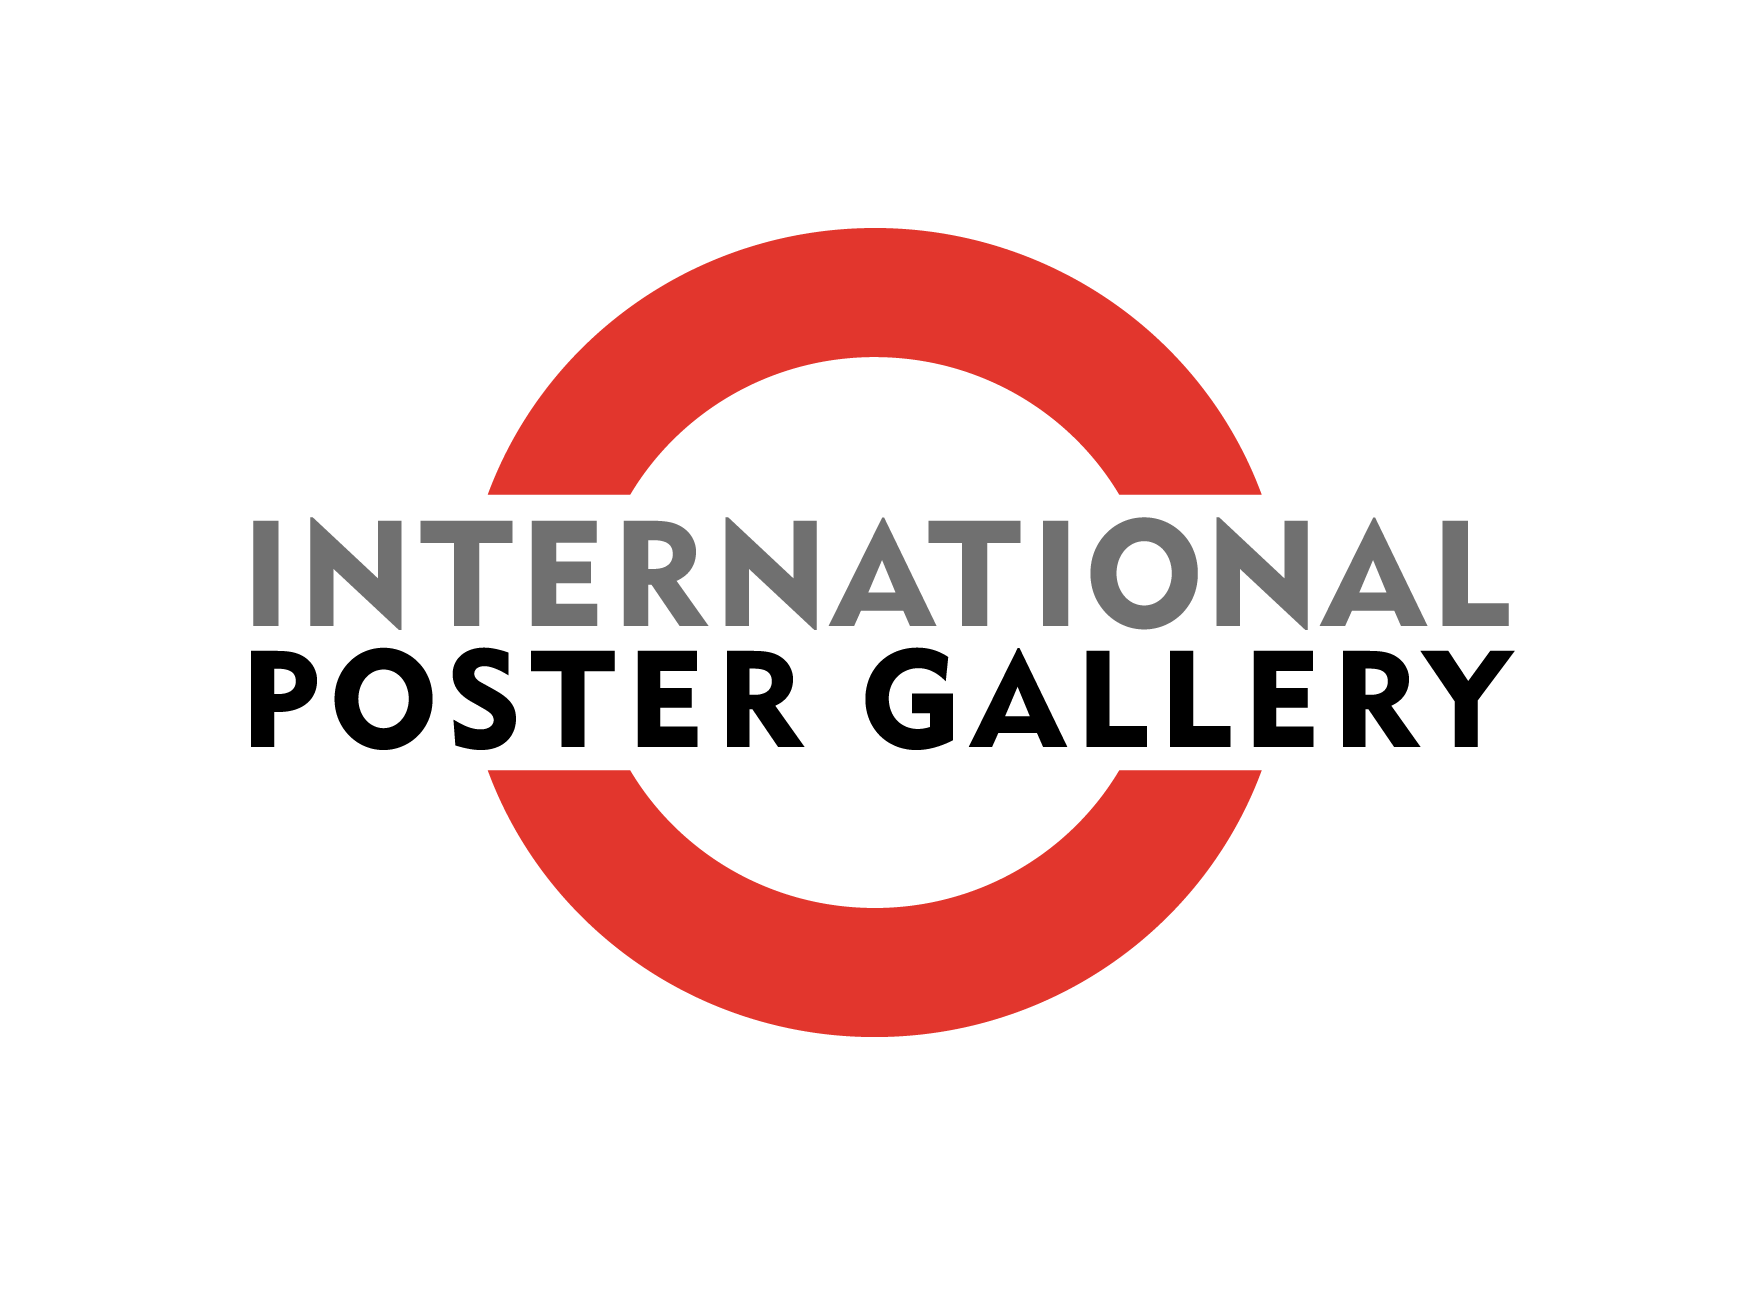 International Poster Gallery Logo; red, white, black